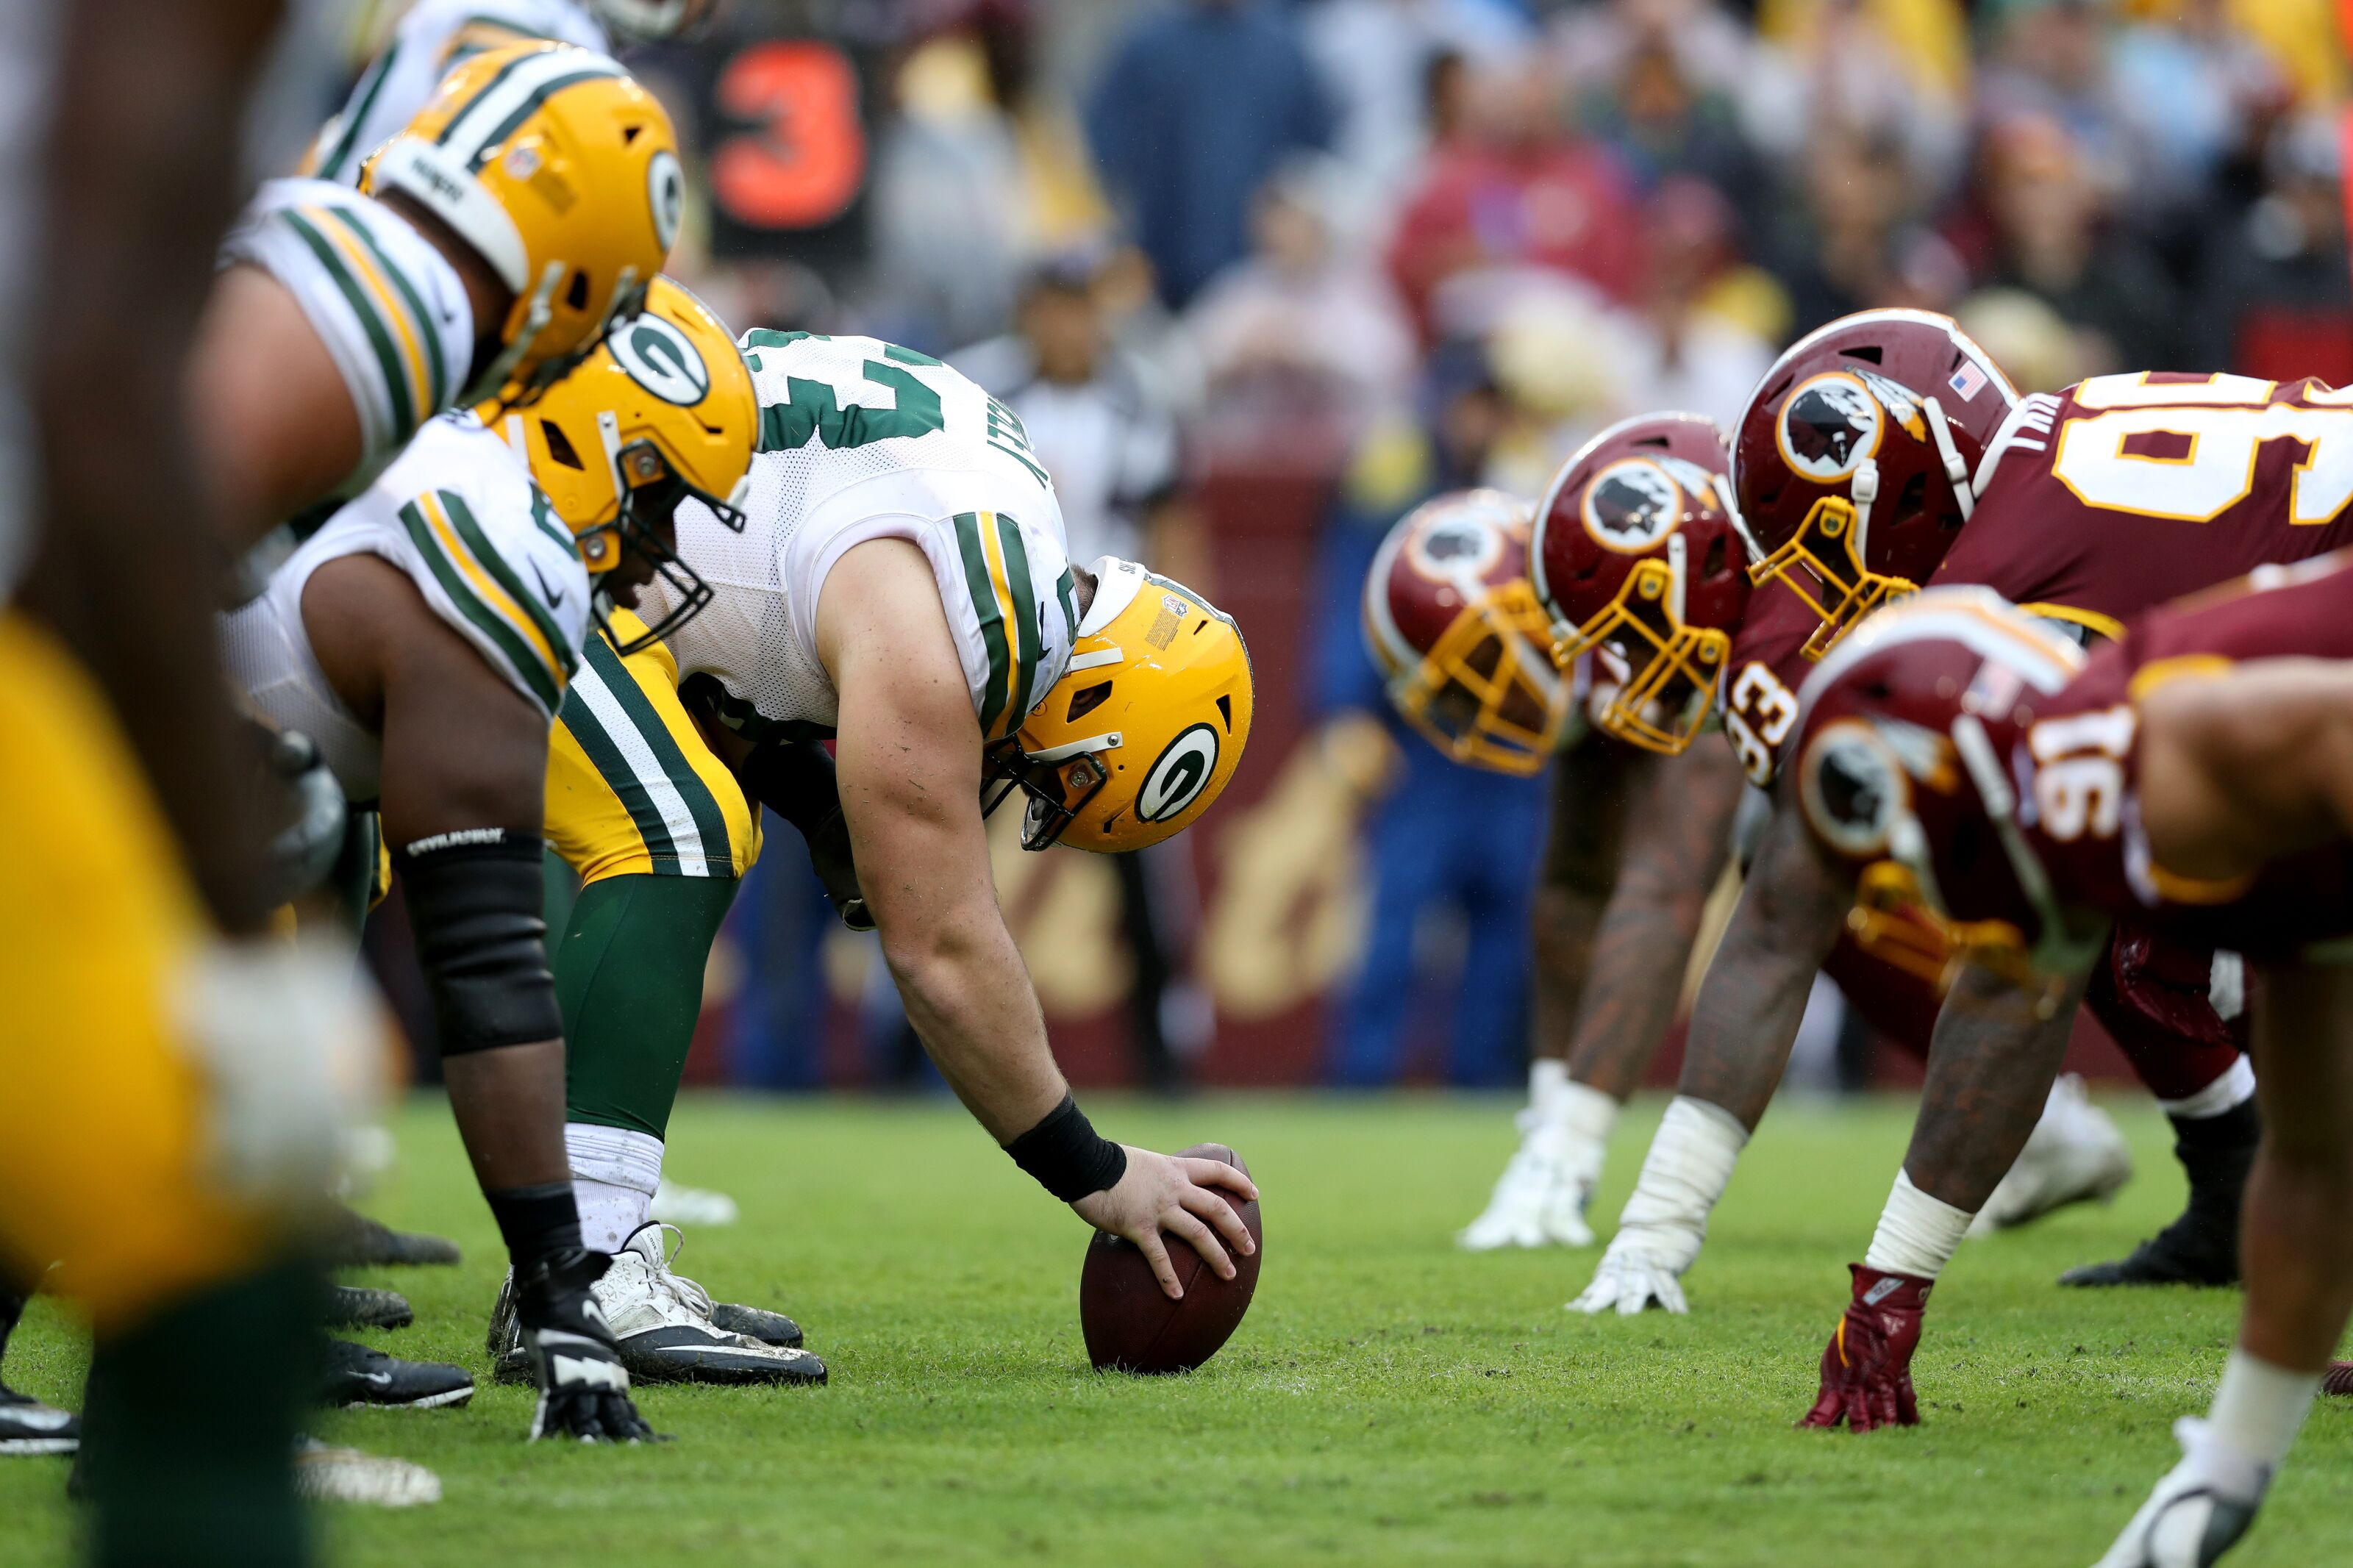 Green Bay Packers 2019 opponent preview: Washington Redskins